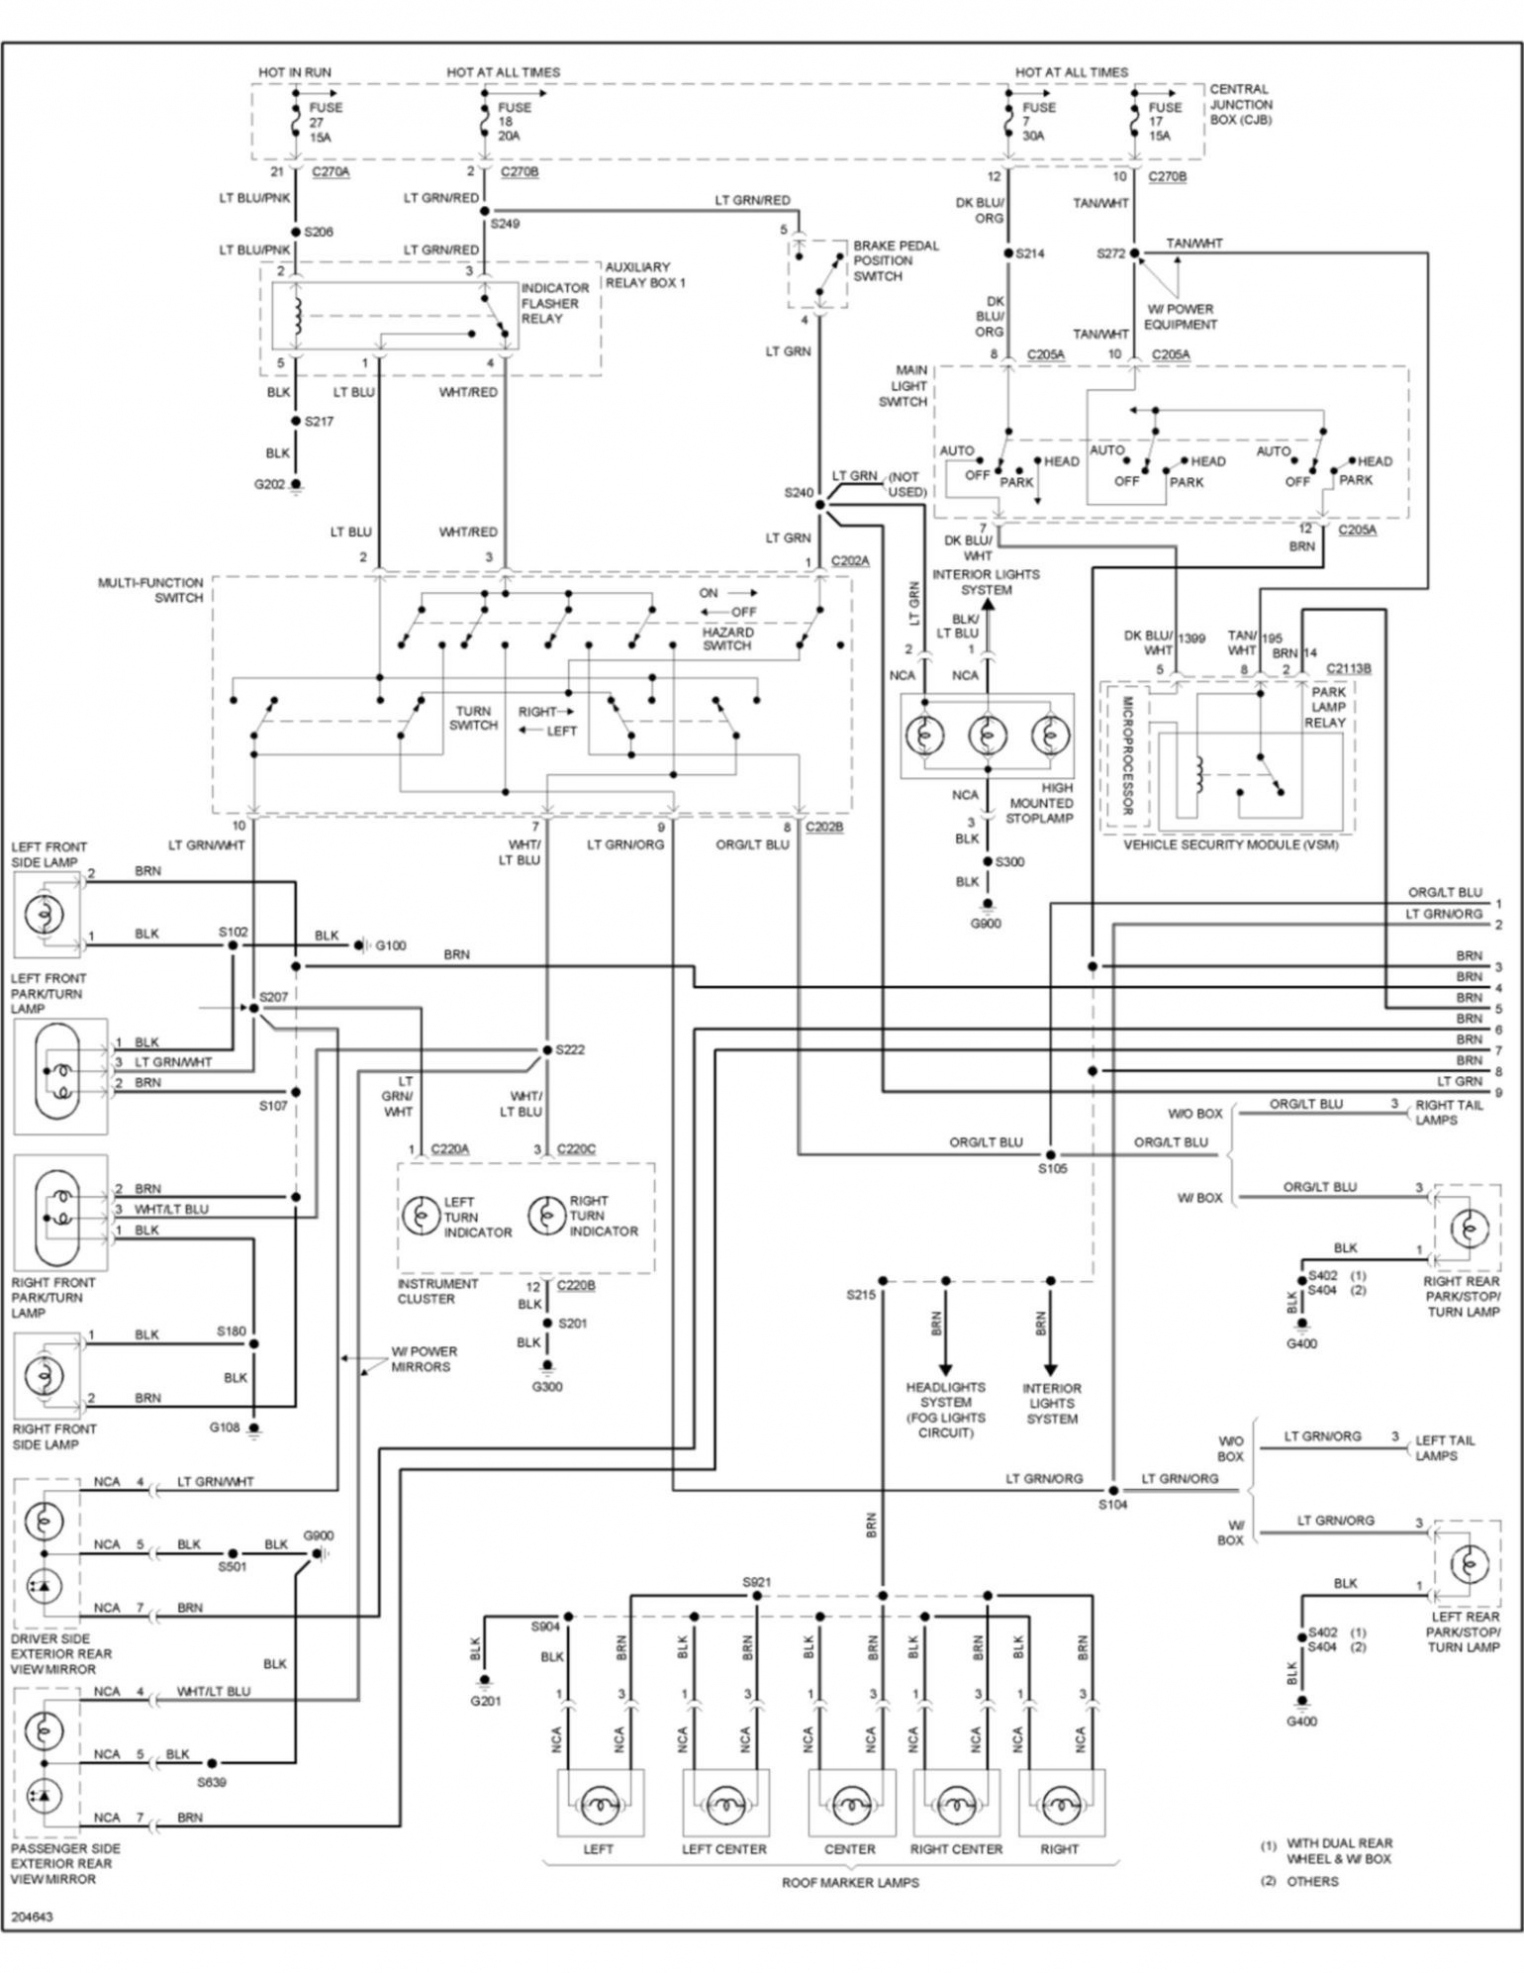 Ford F350 Trailer Wiring Diagram Sample – Ford F250 Trailer Wiring - Ford F250 Trailer Wiring Harness Diagram